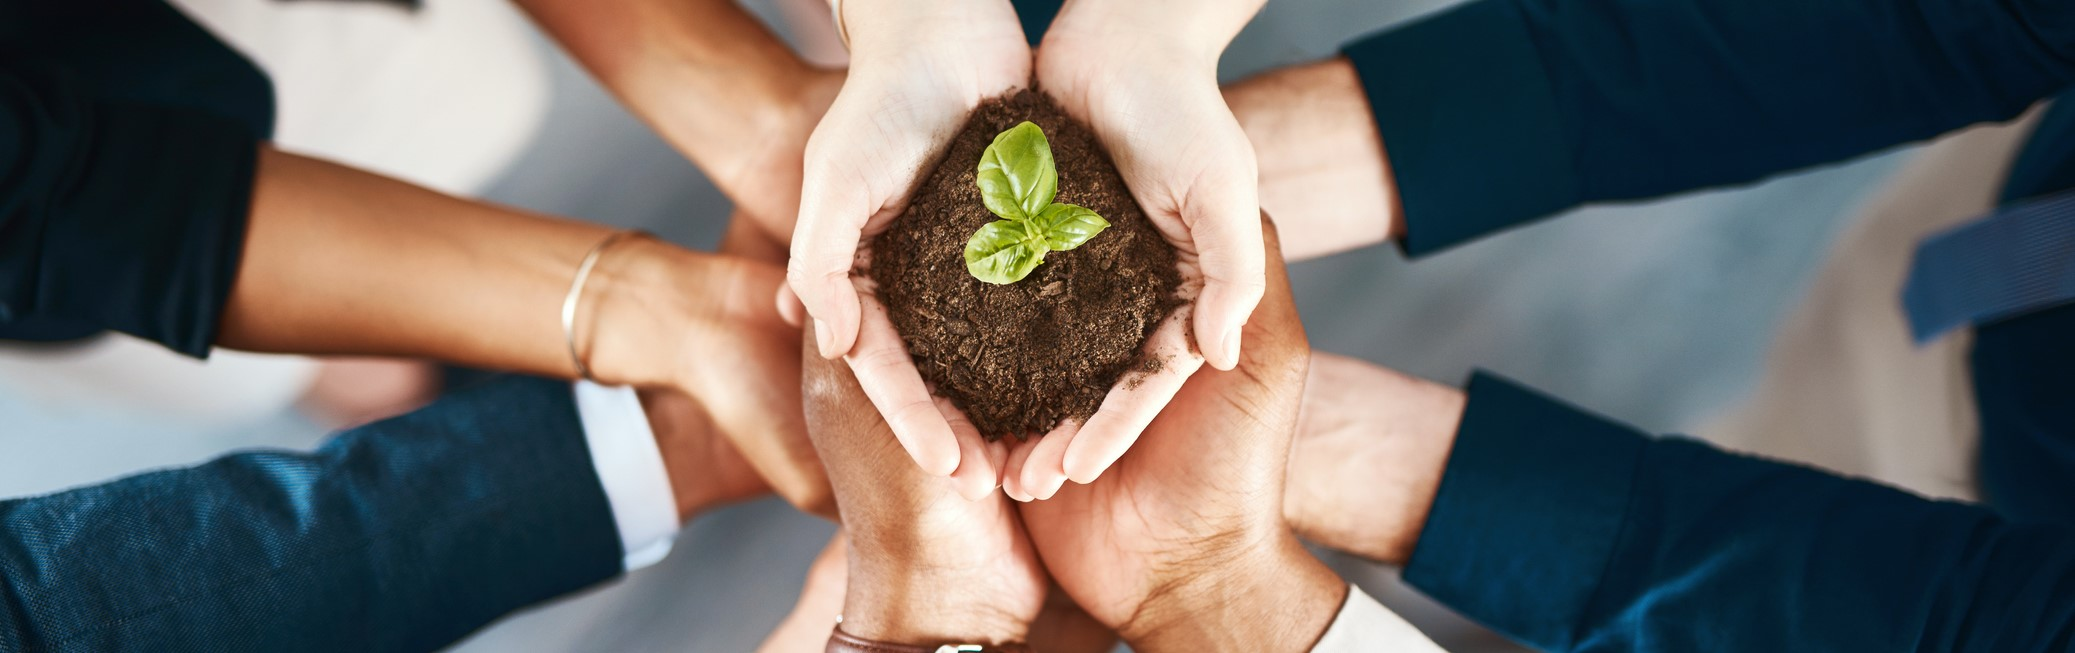 Meeting Expectations: Corporate Social Responsibility